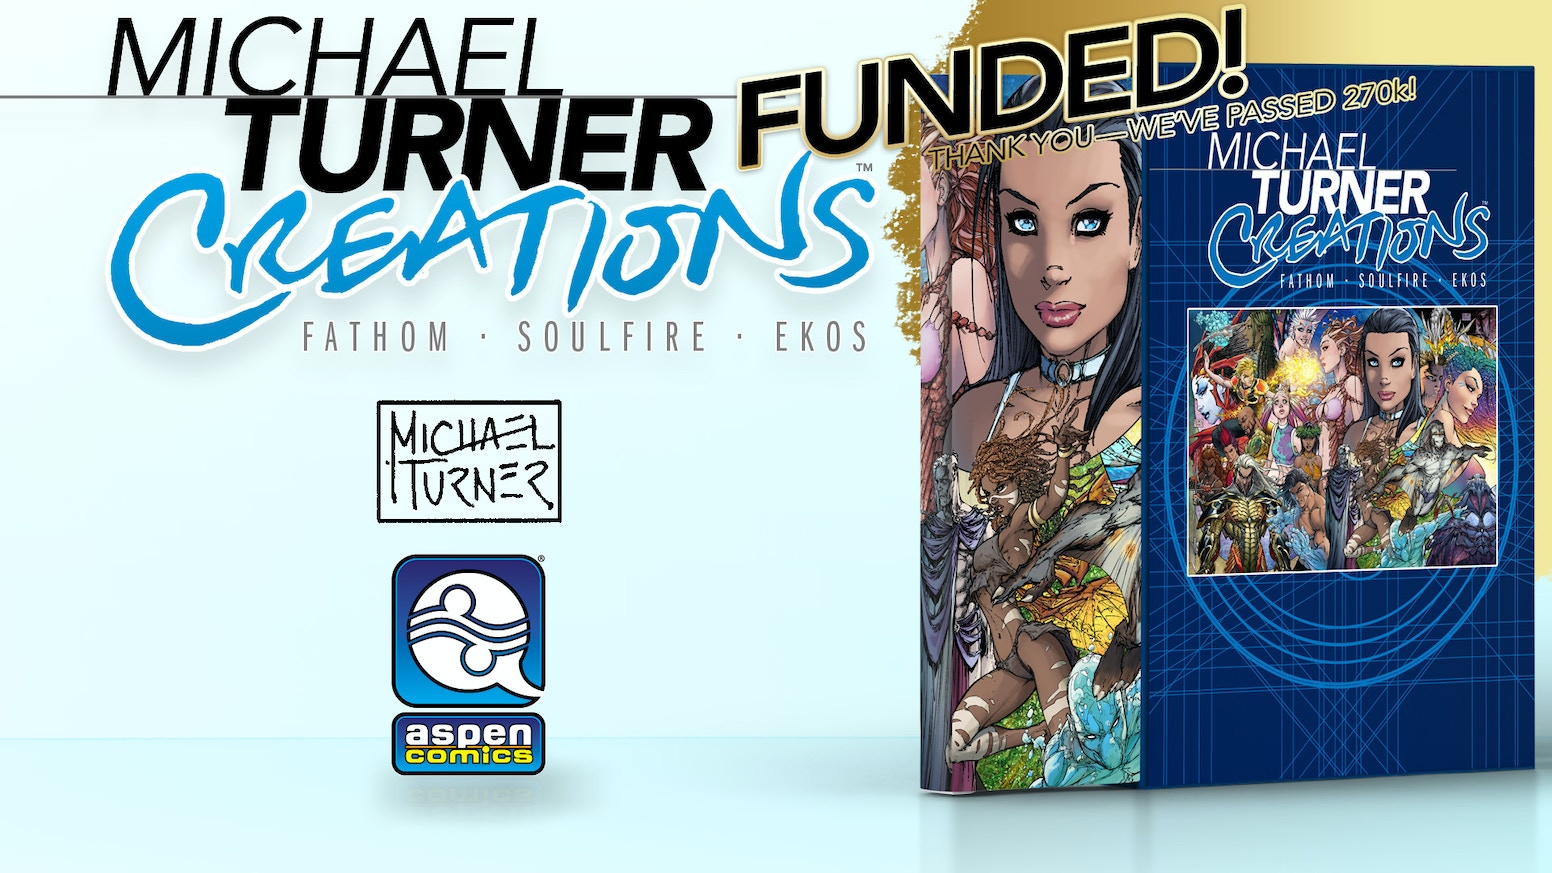 An over-sized Hardcover Graphic Novel featuring comic legend Michael Turner's three original creations, FATHOM, SOULFIRE and EKOS.